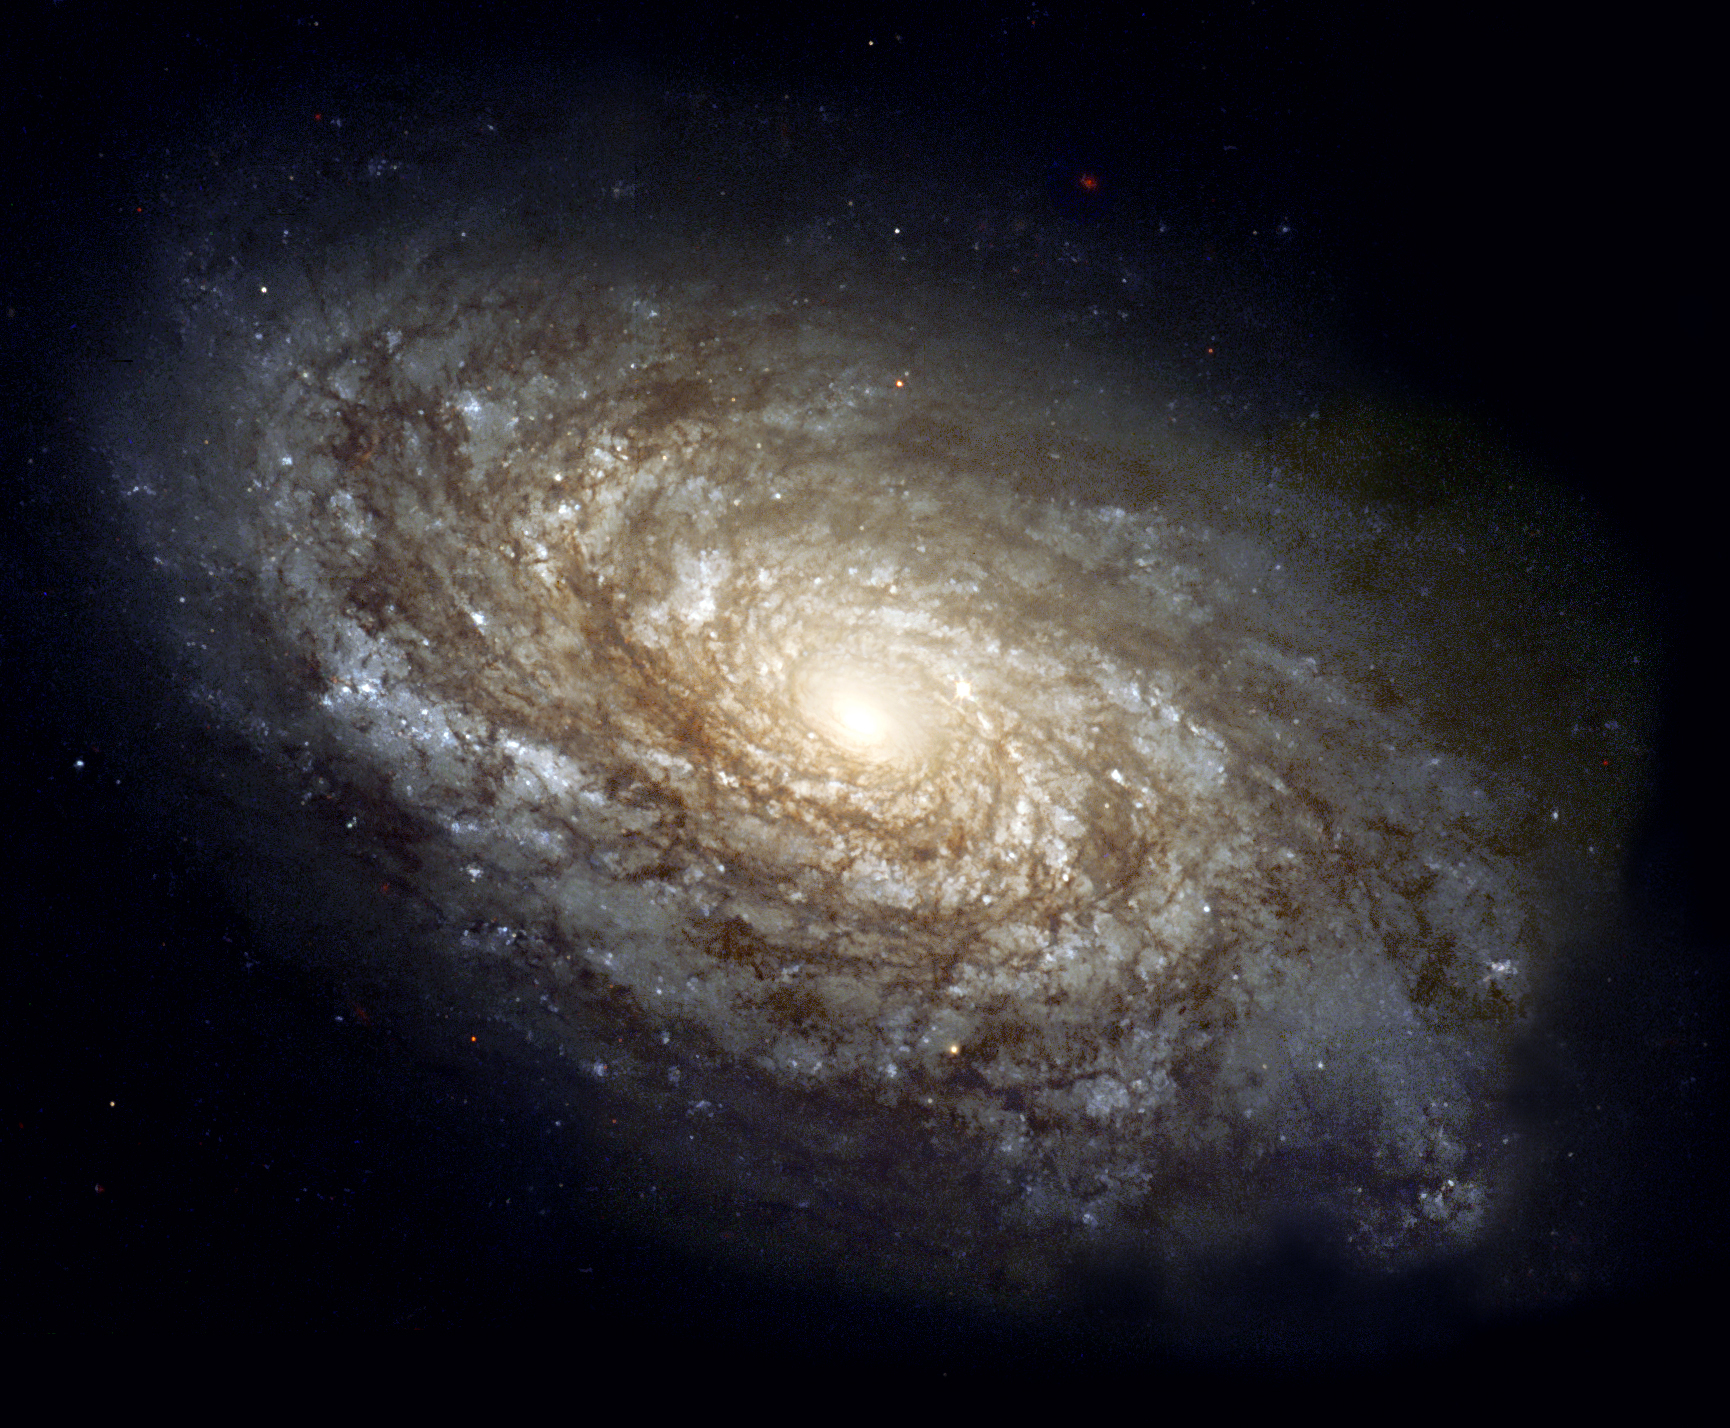 Spiral Galaxy NGC 4414 - The Hubble Telescope Photo ...